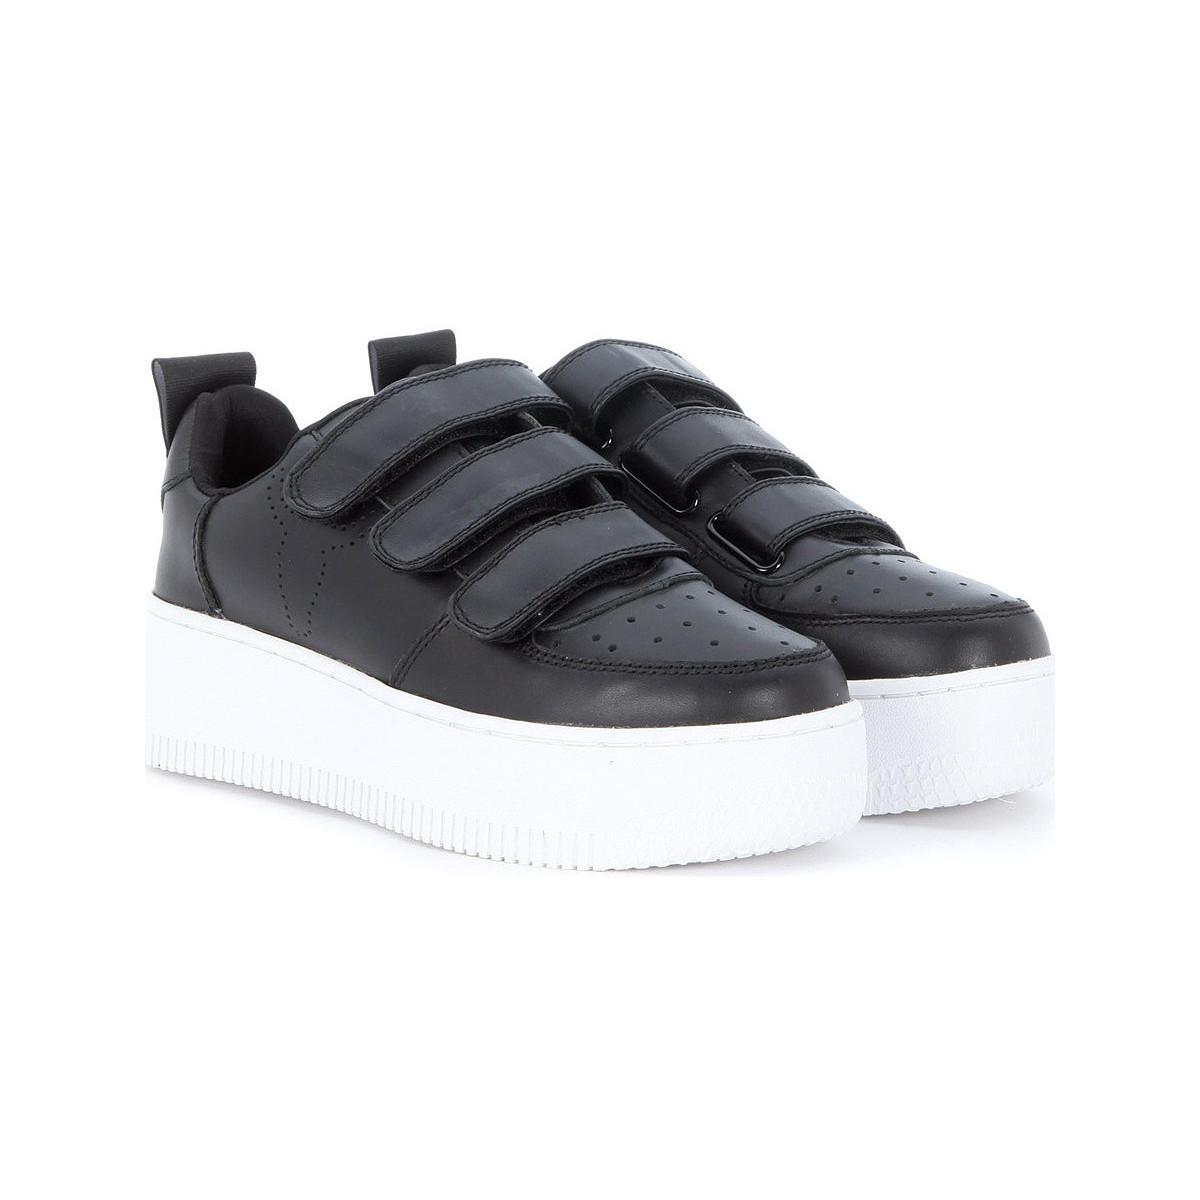 263888c0a94 windsor-smith-black-Sneaker-Fastt-In-Pelle-Nera-Womens-In-Black.jpeg